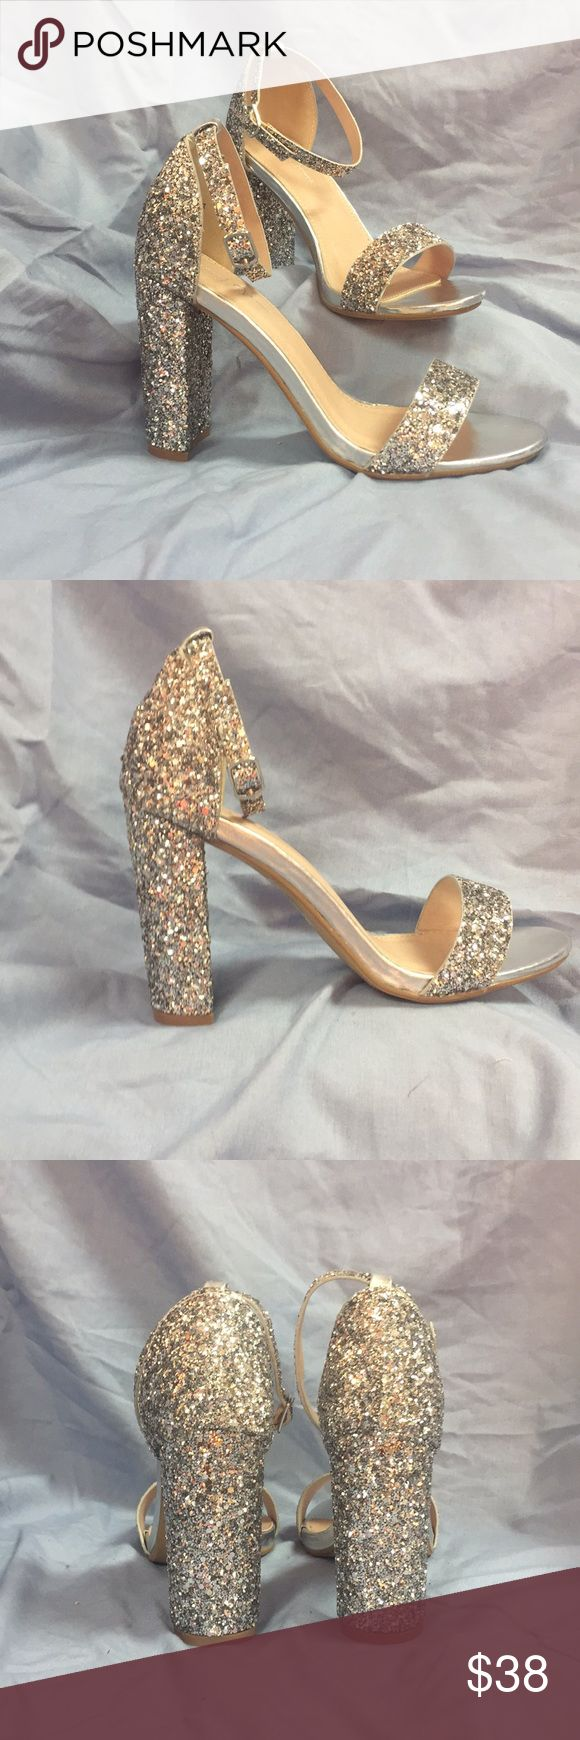 """Silver glitter heels Silver glitter heels with ankle strap 5"""" heel. Perfect for prom or padgent. NEW never worn. Perfect condition. J. Adams Shoes Heels #anklestrapsheelsprom #GlitterHeels"""